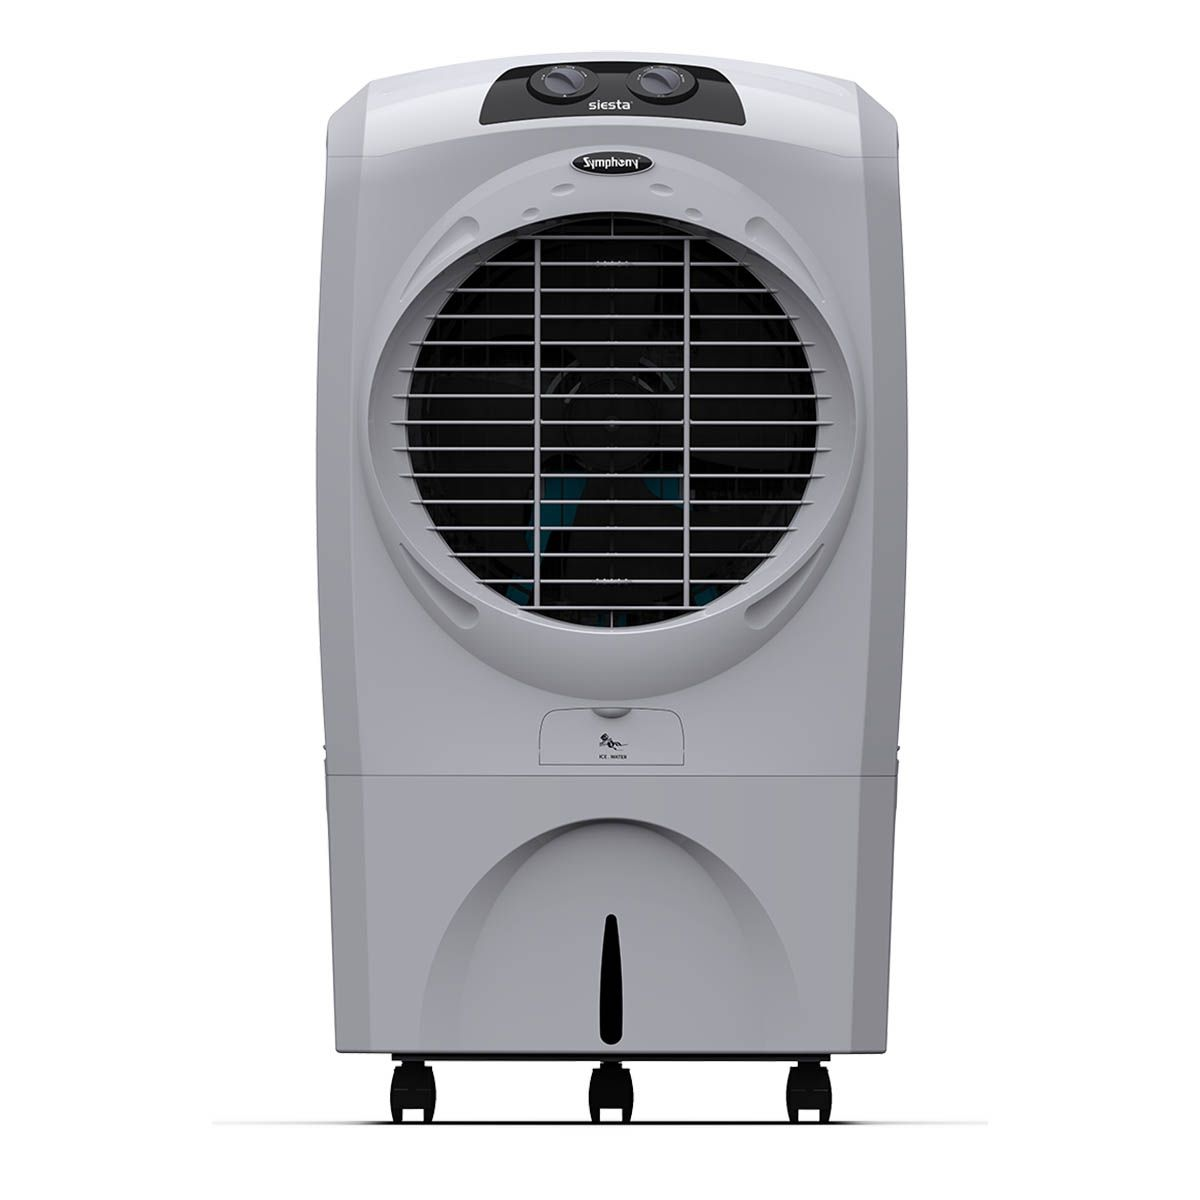 Symphony Siesta 70 XL Powerful Desert Air Cooler 70-litres with Powerful Fan